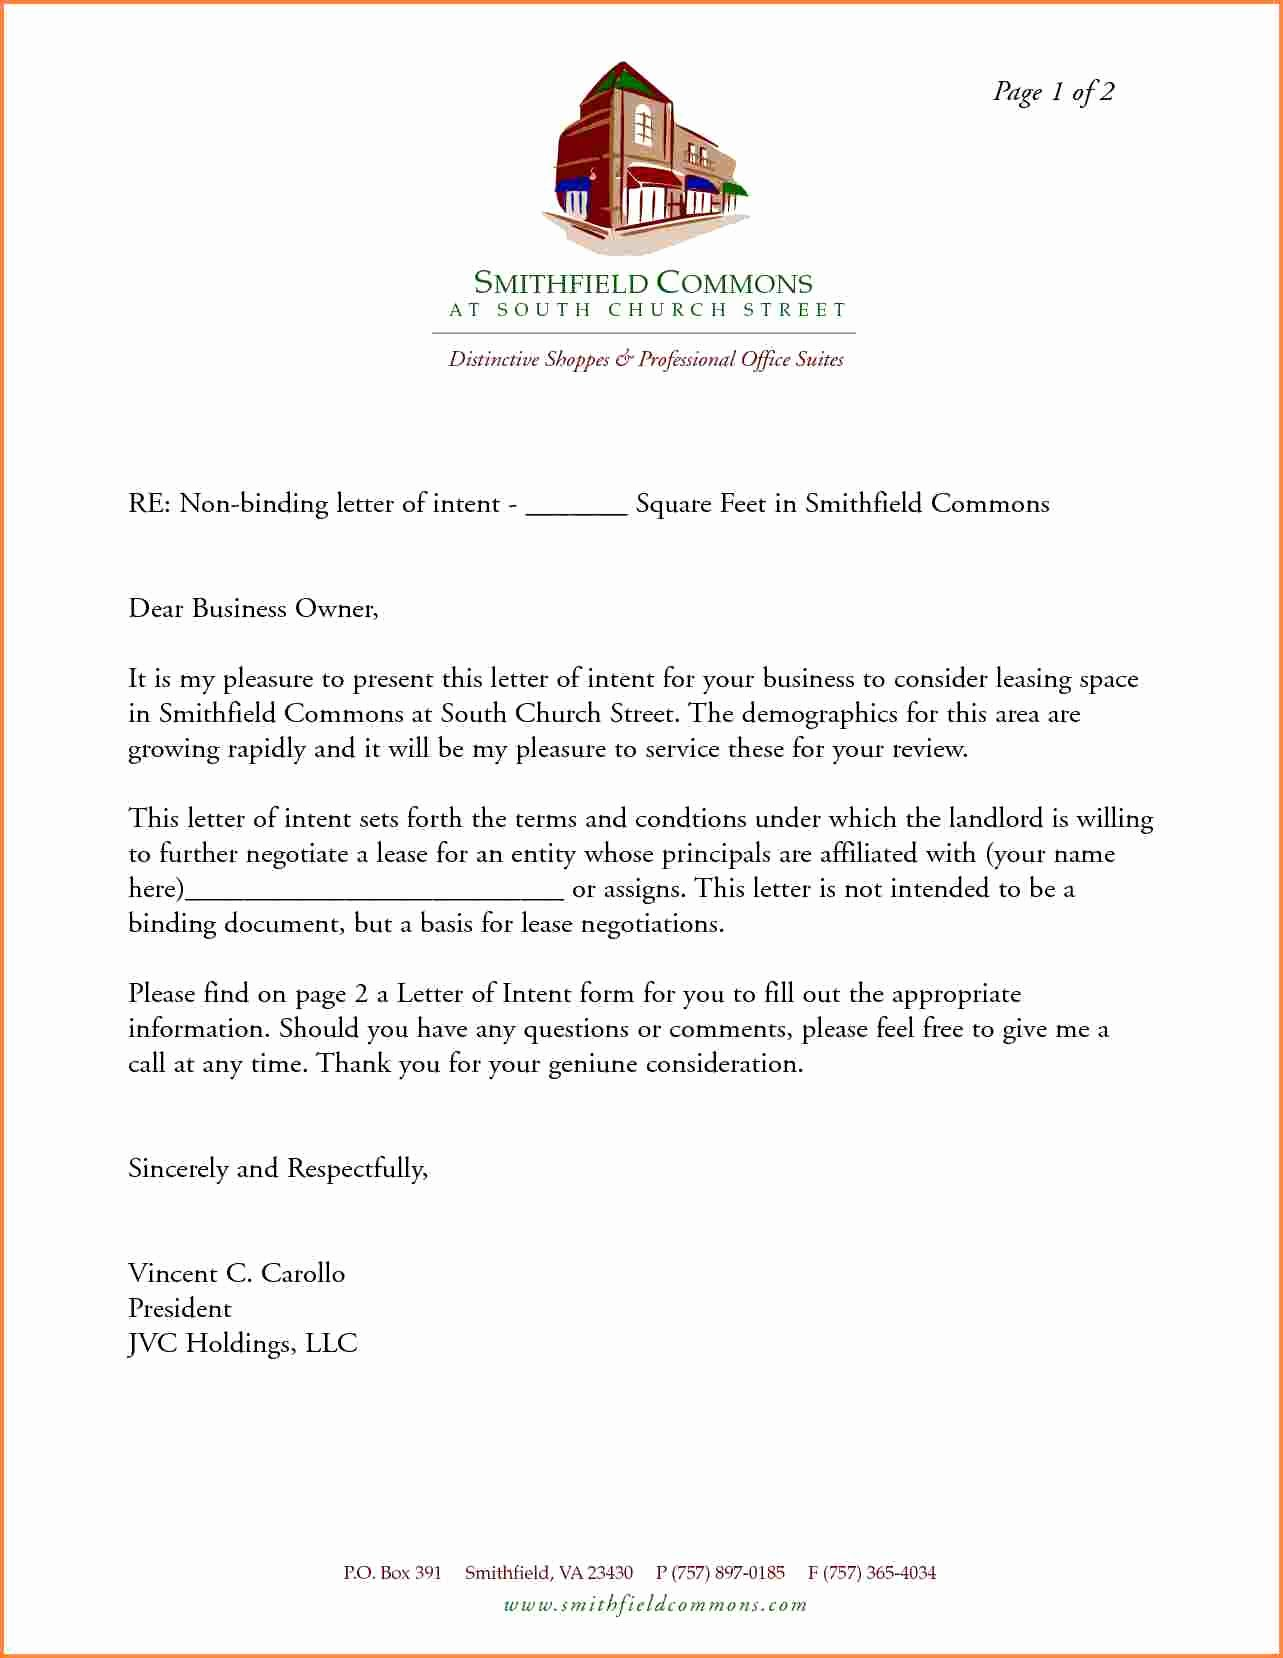 Rent Letter Of Intent Elegant Letter Intent to Lease Mercial Property Template